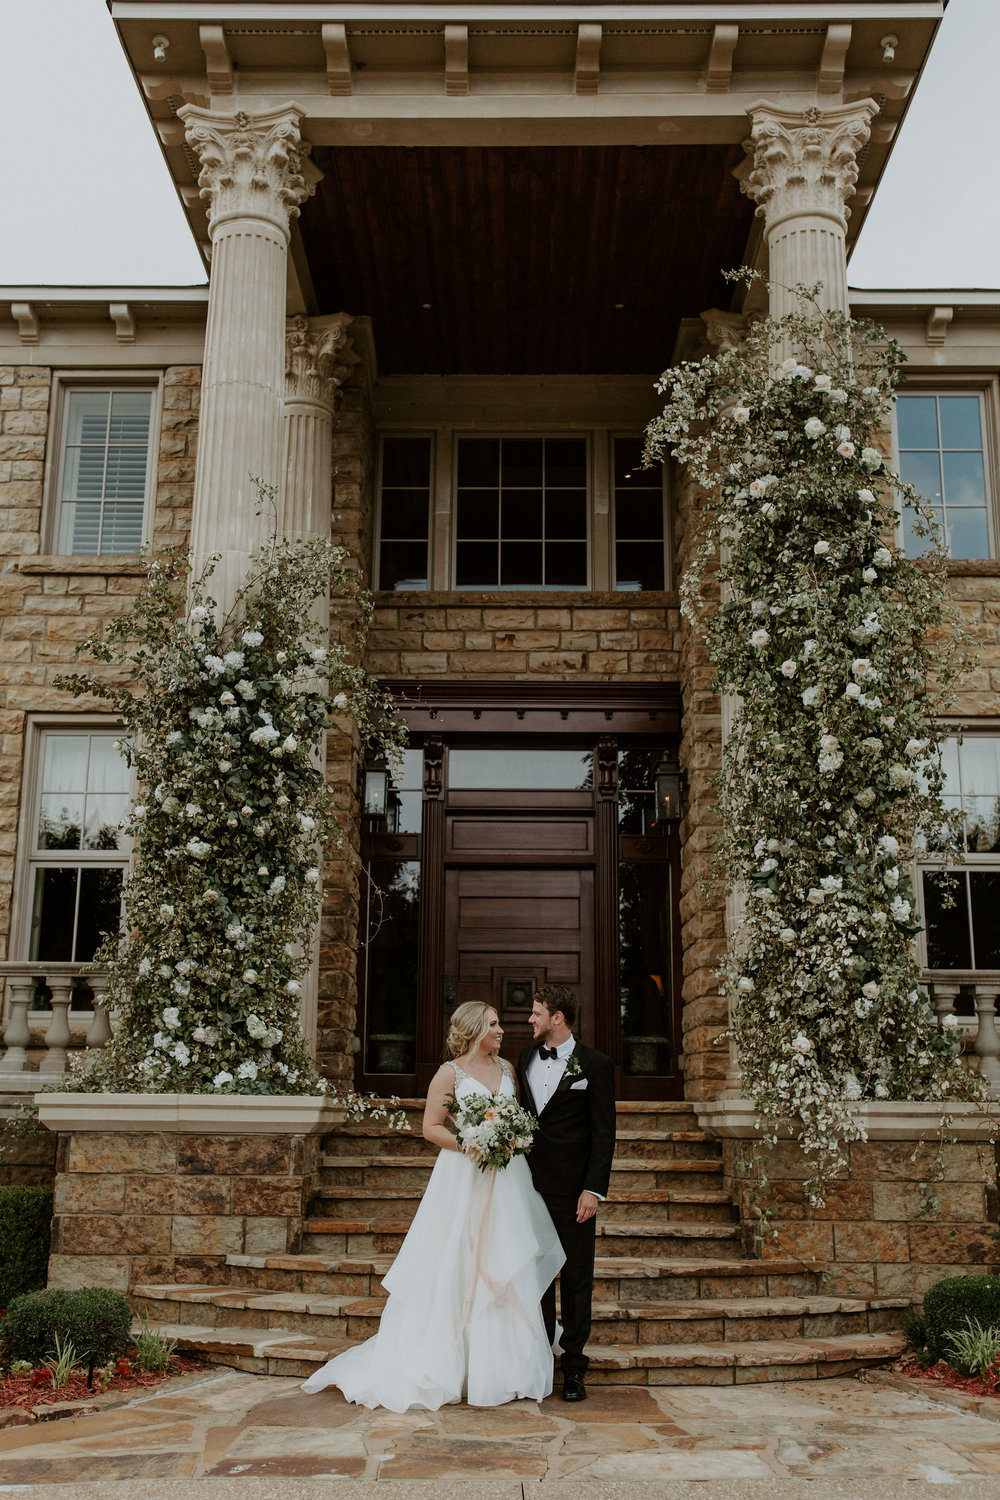 We got married at Daniel's house. His house has these beautiful columns at the steps we were going to get married on. Jessica and I talked about making a big impact with the columns. These columns are TALL, you guys. I don't even know how TLF pulled this one off.